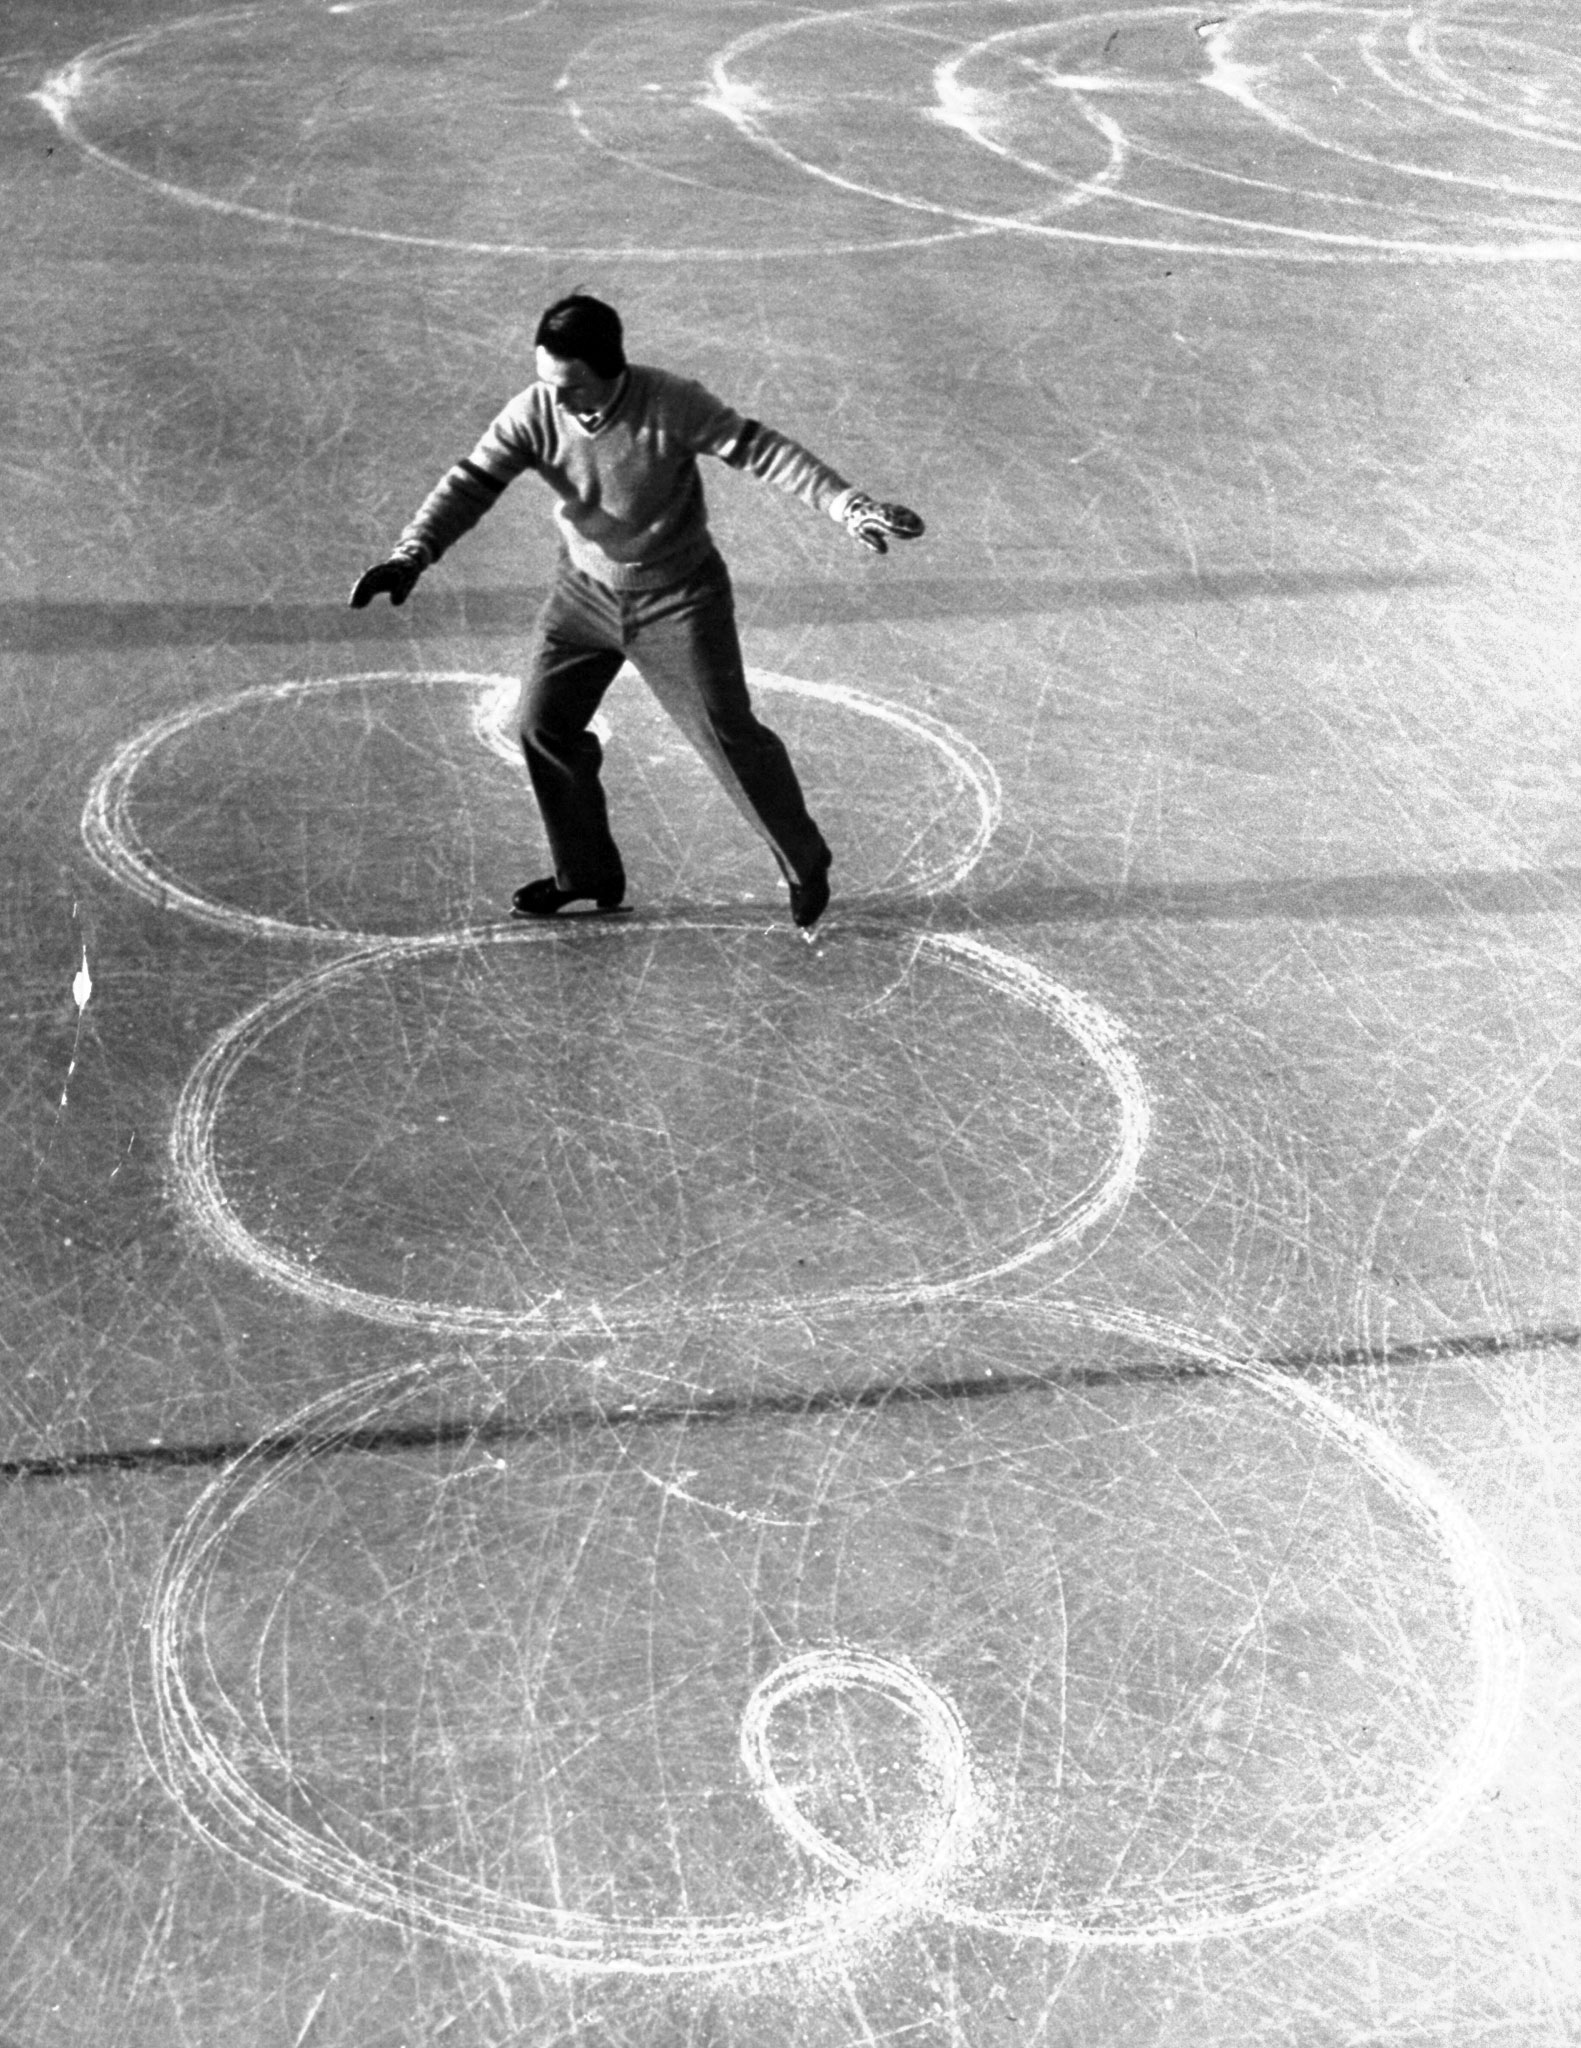 <b>Caption from LIFE.</b> Uncrowned champion of the men skaters was 17-year-old Richard Button of Englewood, N.J. He led in points but judges voted 3 to 2 for Swiss contestant.